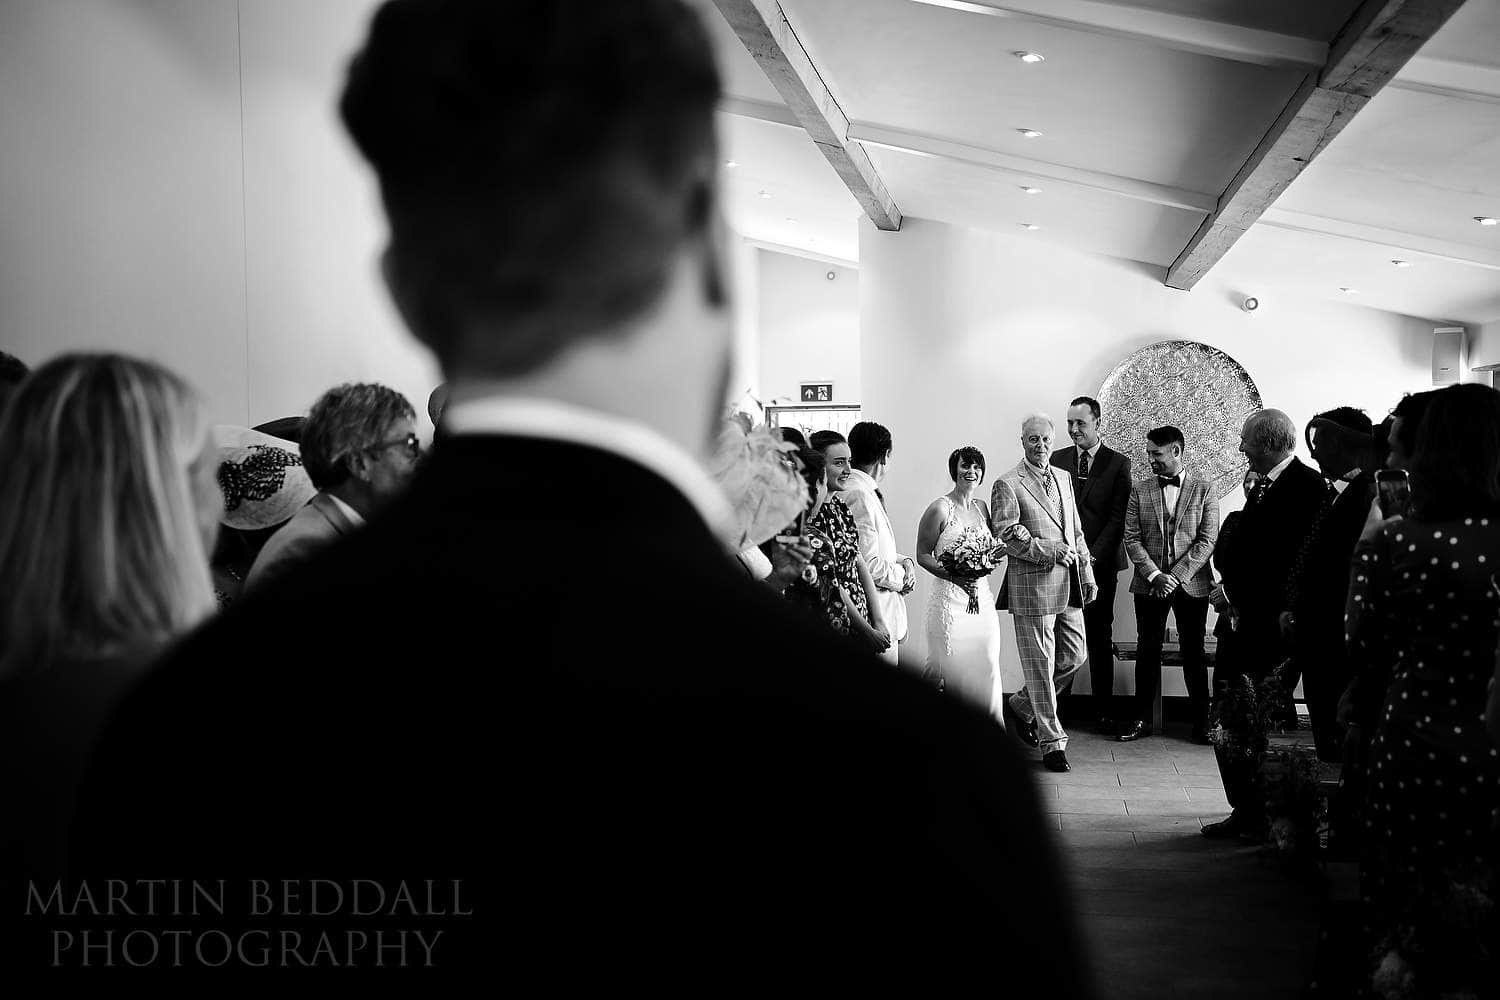 Bride escorted in by her father